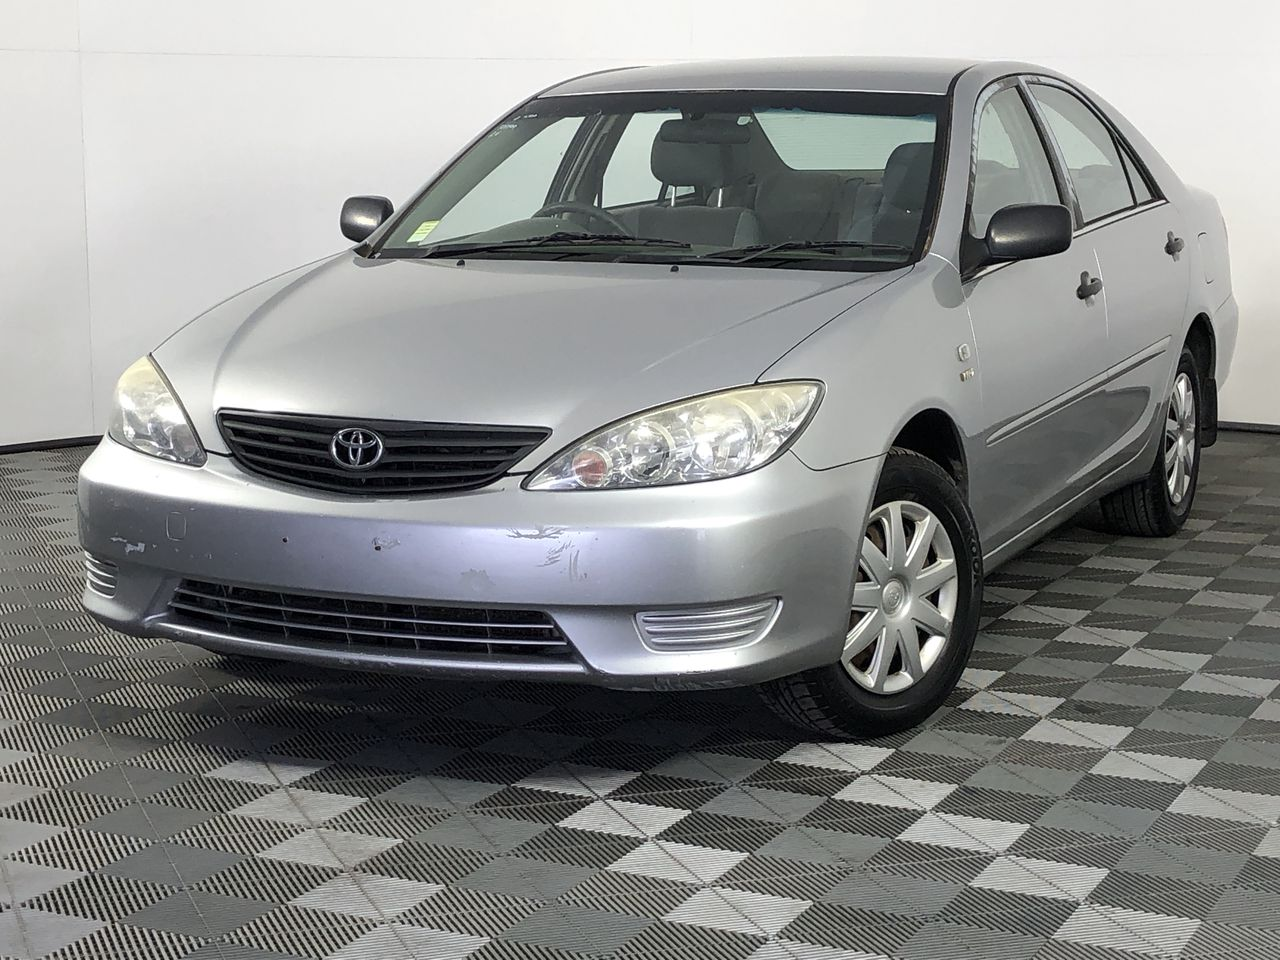 2004 Toyota Camry Altise ACV36R Automatic Sedan